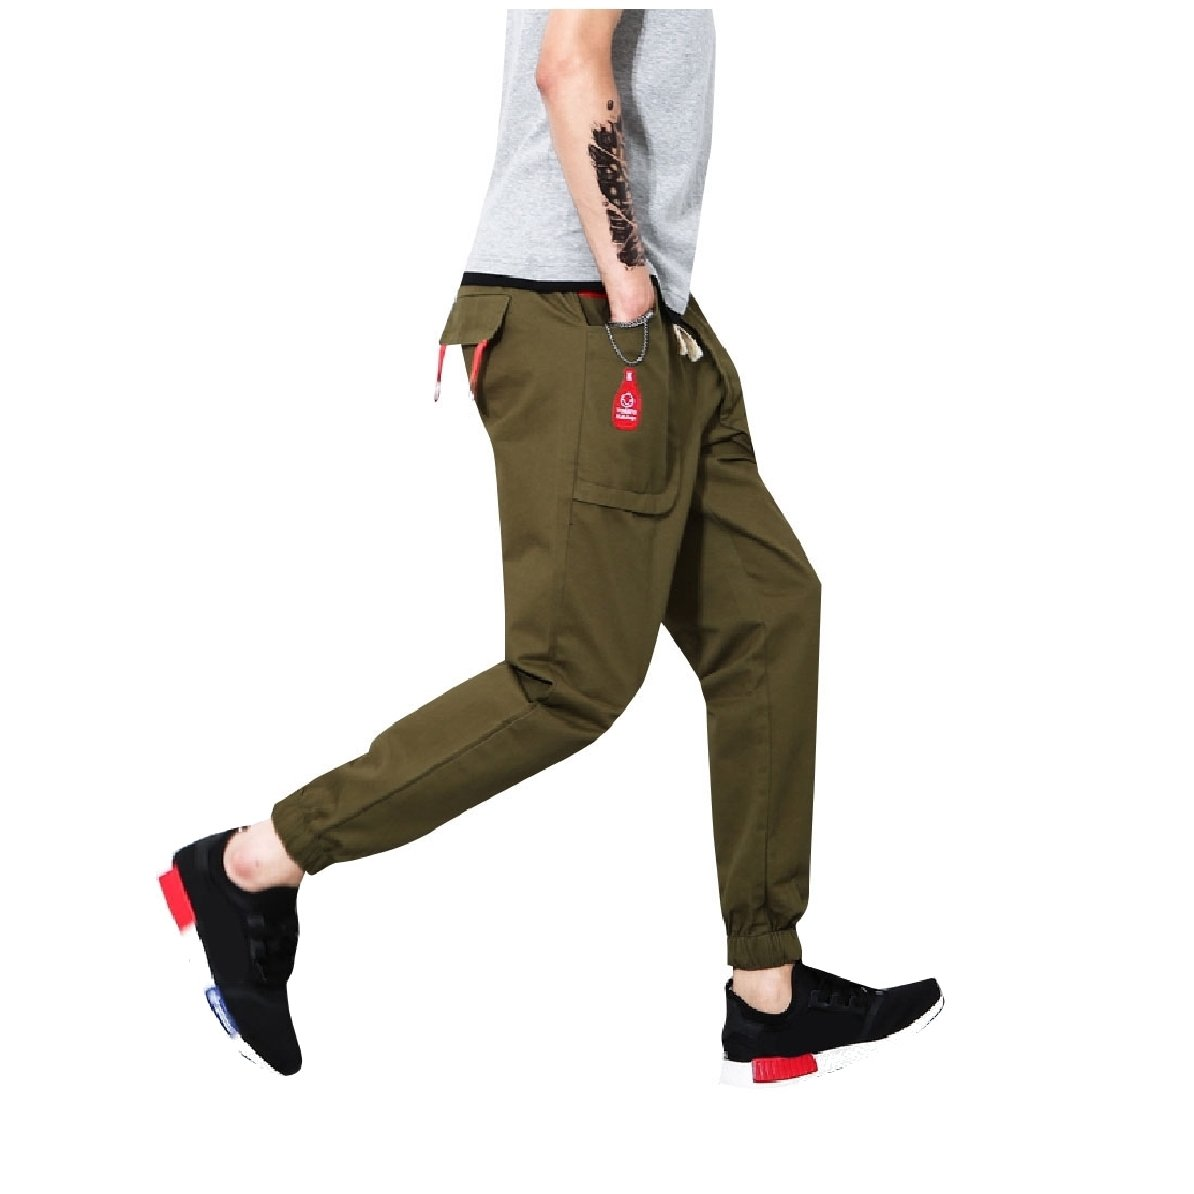 YUNY Mens Elastic Drawstring Pocket Trousers Back Cotton Harem Pants Army Green L